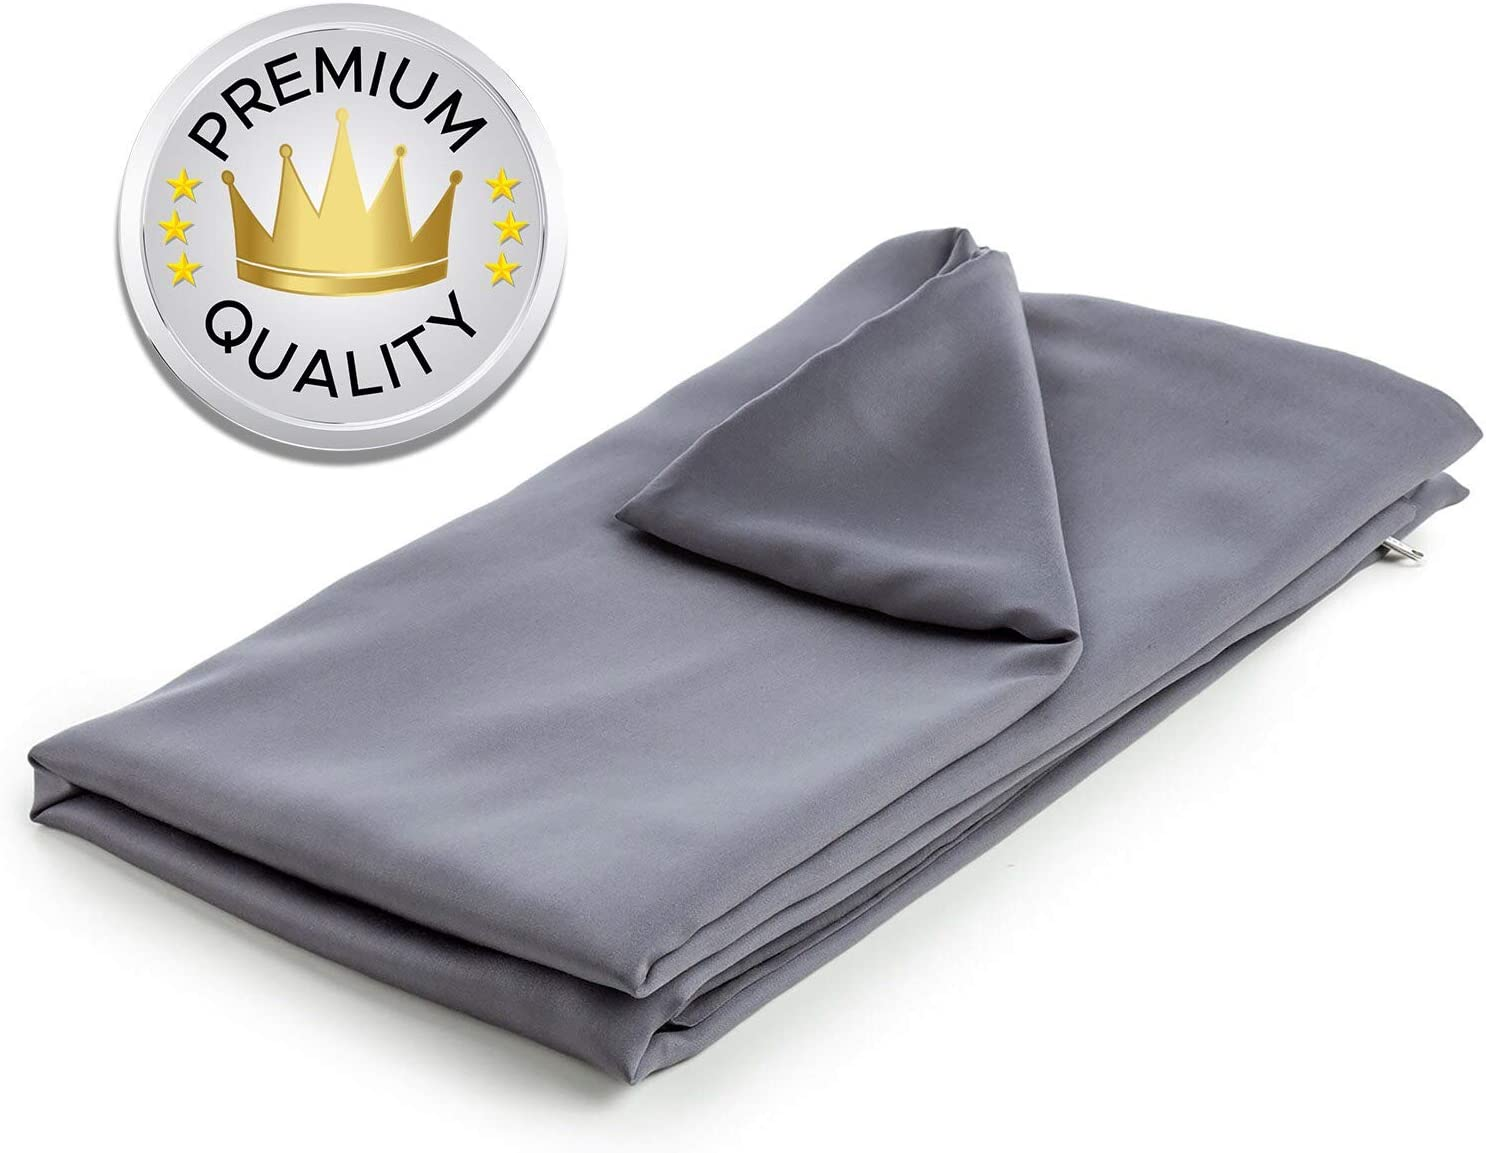 Snuggle Pro Duvet Cover for Weighted Blanket - 60 x 80 Inches Queen Size - 100% Oeko-Tex Certified Cooling Bamboo - Removable and Machine Washable - Grey